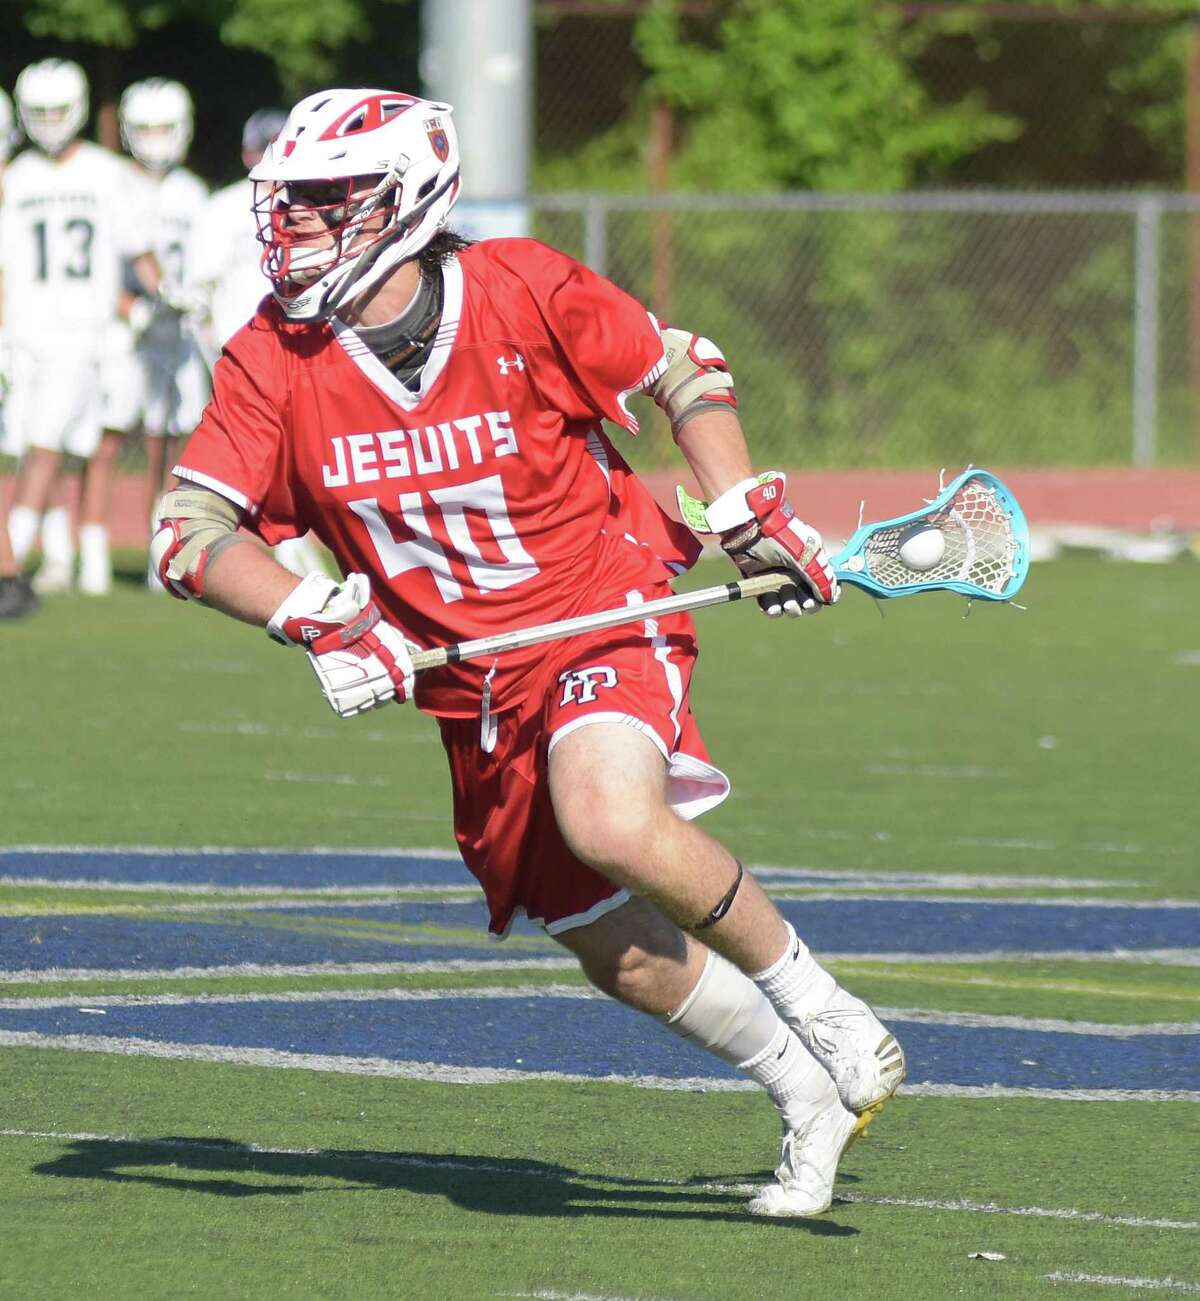 Fairfield Prep?'s Thomas Walton heads toward goal during Wednesday?'s Class L state tournament first round game against Staples in Westport. Prep won 11-10 in overtime.